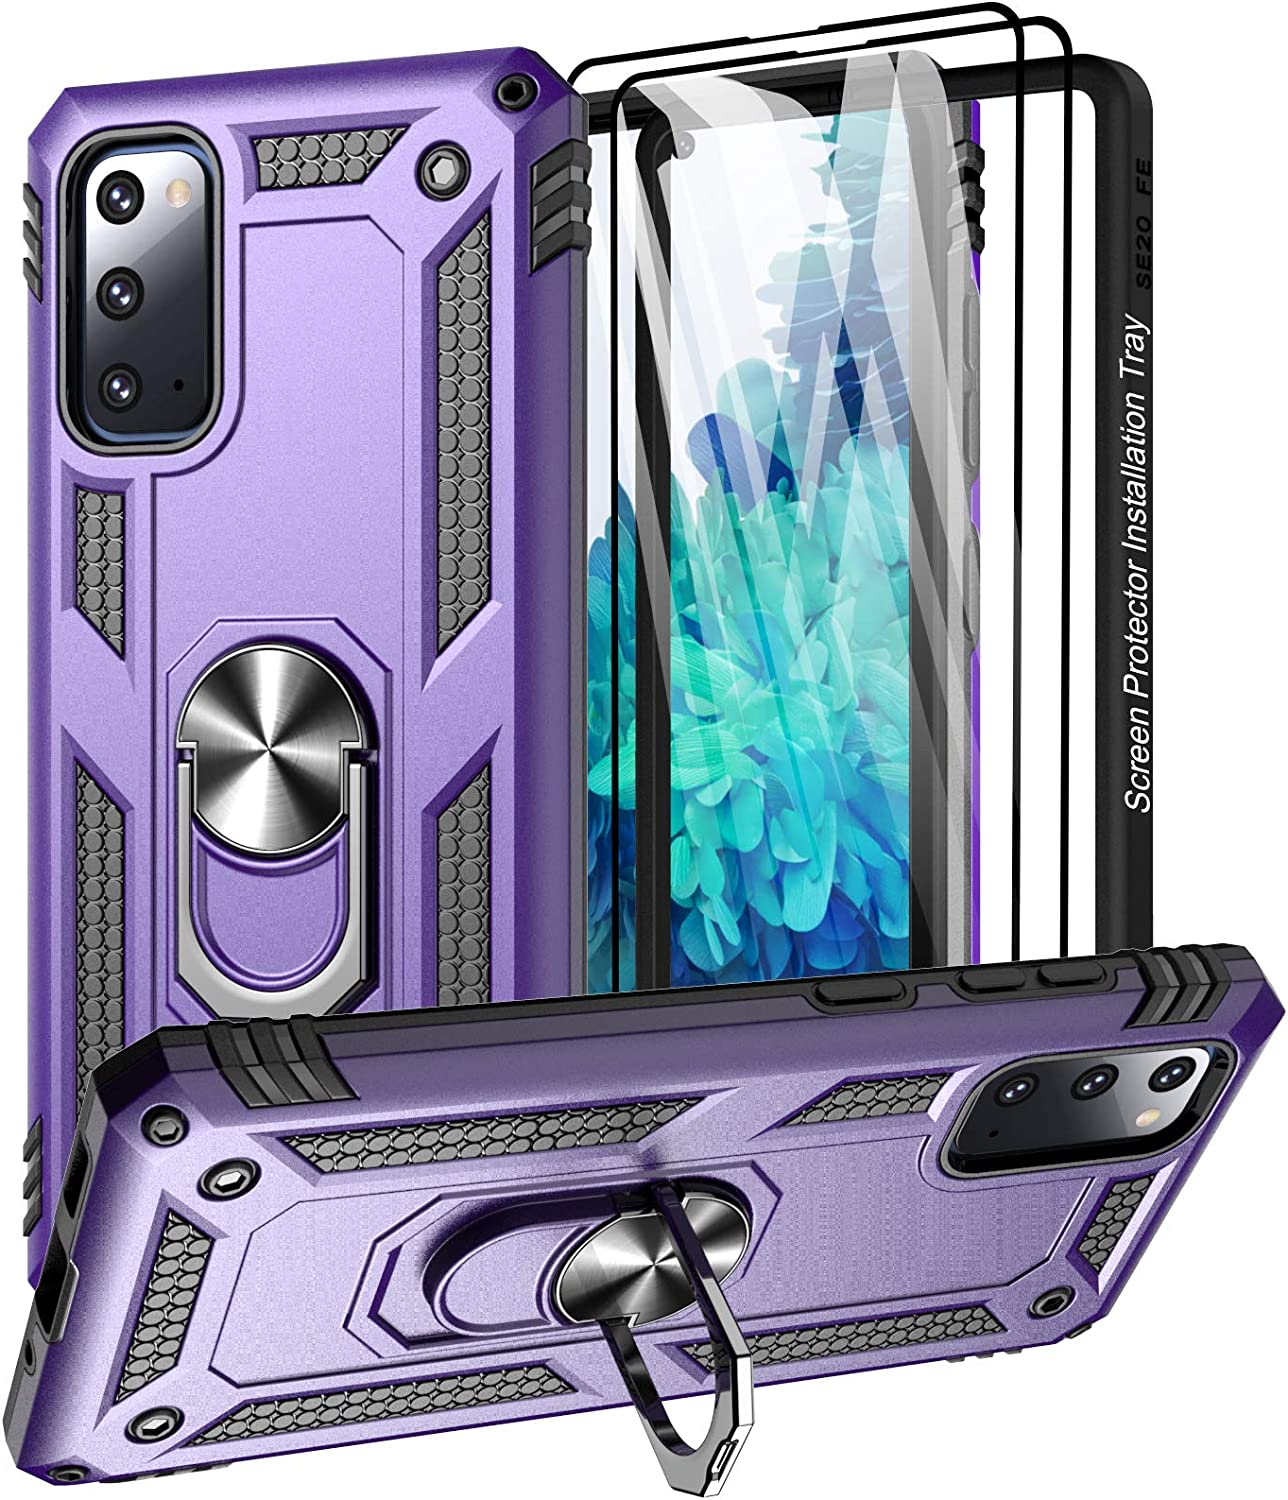 Aliruke Case for Galaxy S20 FE Case with 2 Glass Screen Protector and Align Frame,Military Grade Drop Tested Cover Grip Ring Kickstand Phone Cases for Samsung Galaxy S20 FE 5G/S20 Fan Edition, Purple